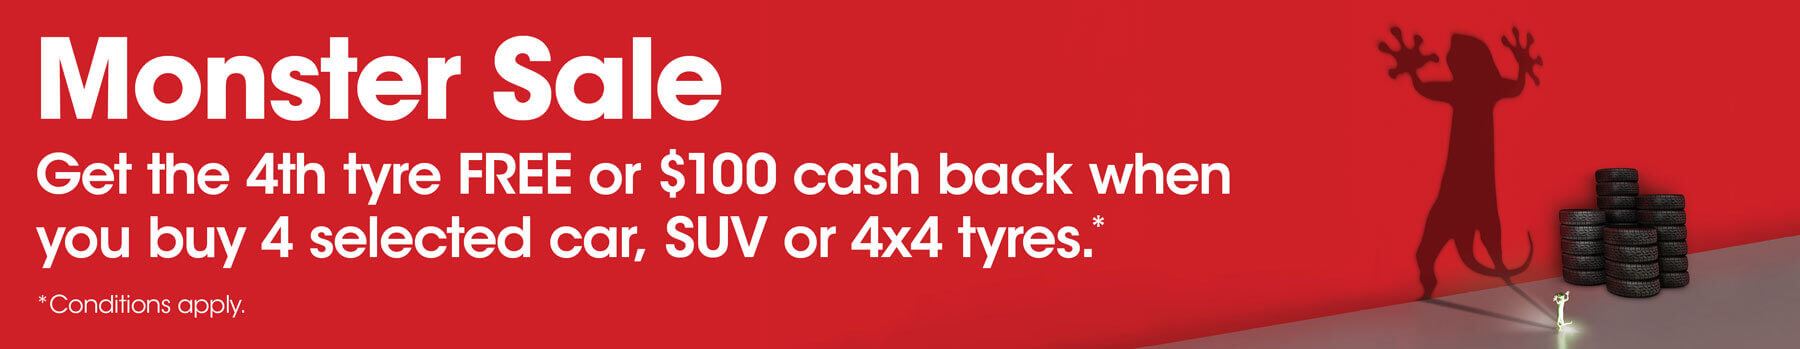 Get the 4th tyre free or $100 cash back when you buy 4 selected car, SUV or 4x4 tyres.